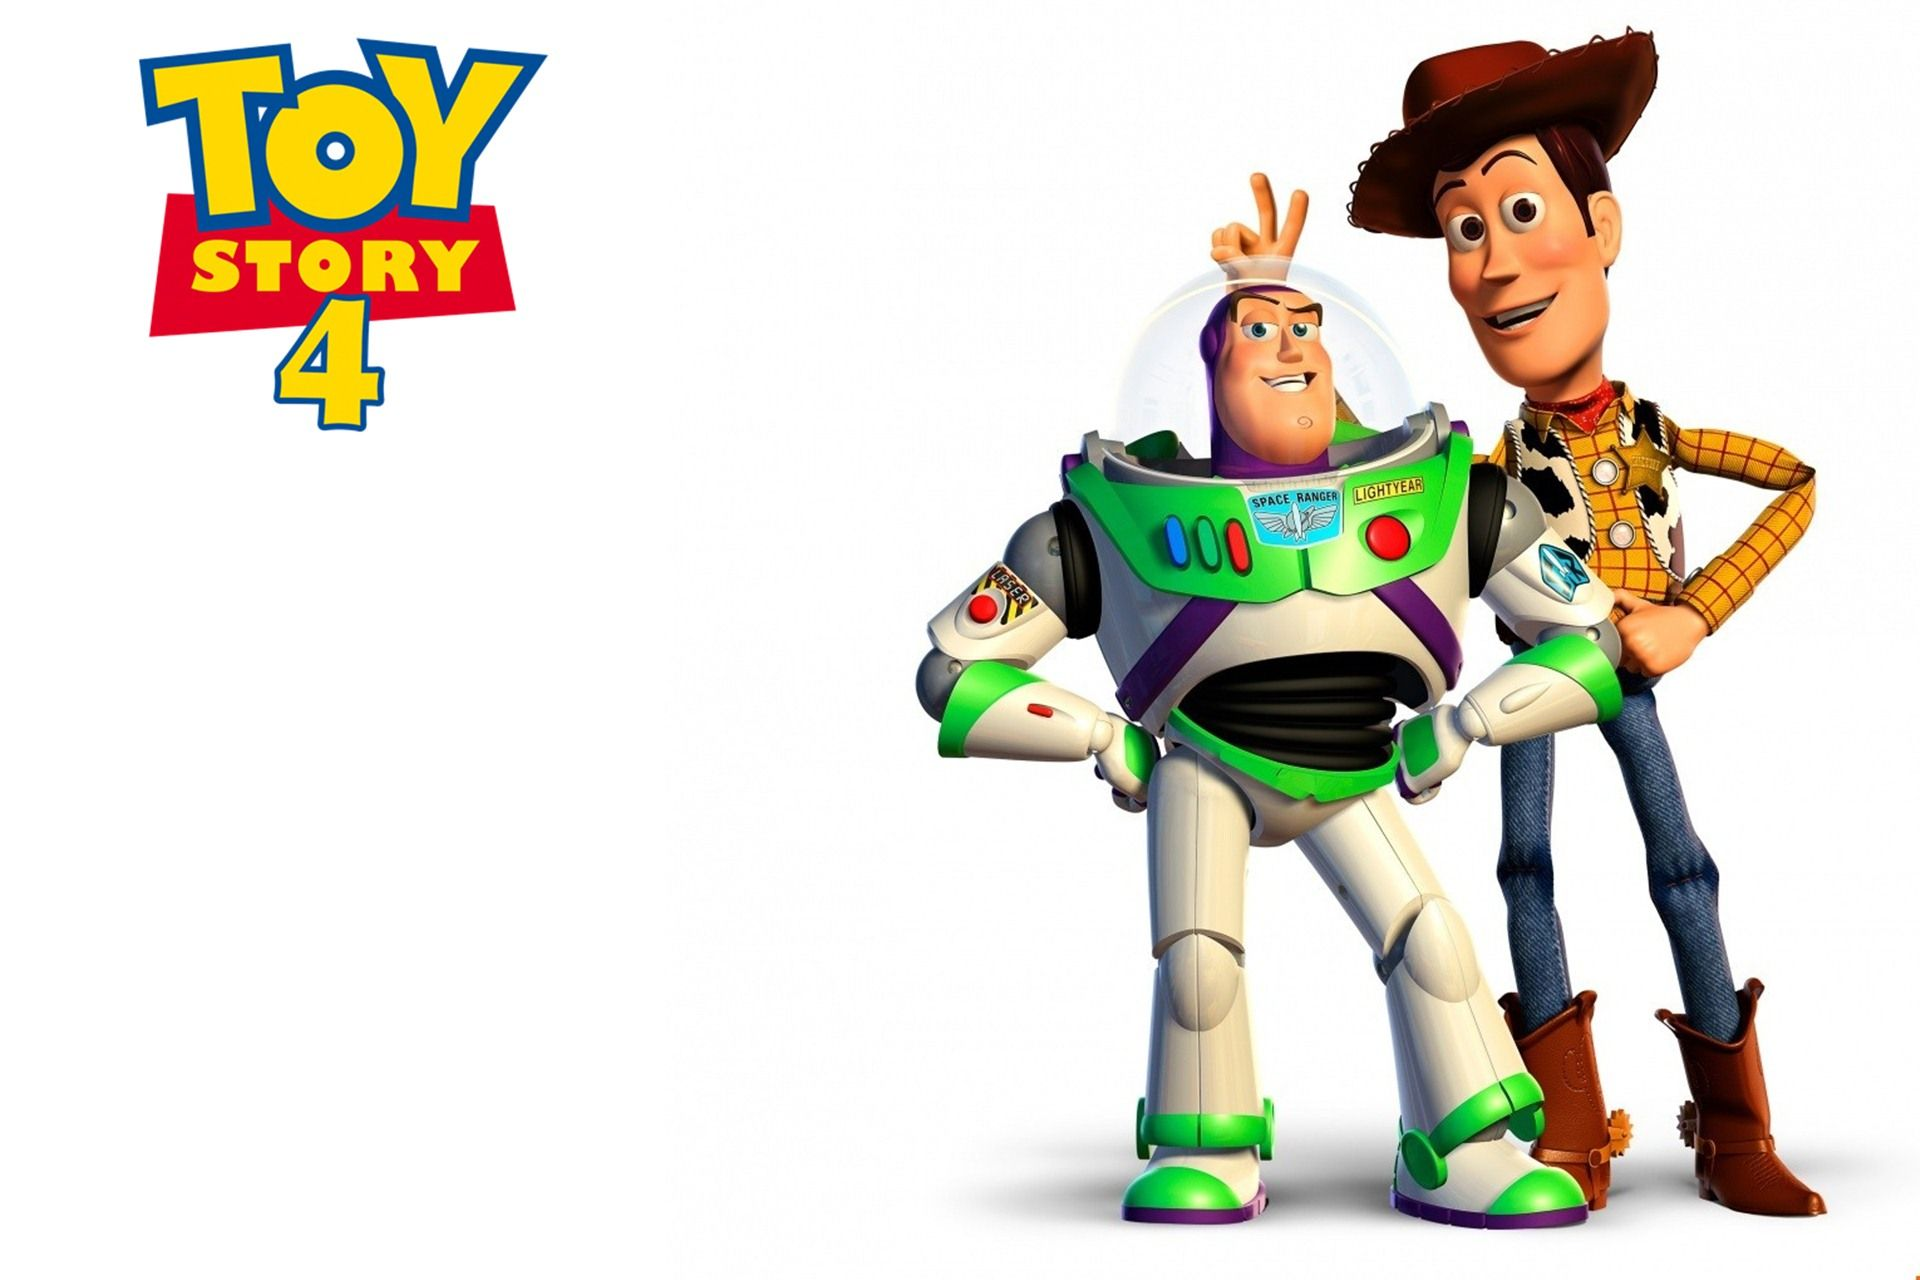 Toy Story 4 Wallpapers Top Free Toy Story 4 Backgrounds